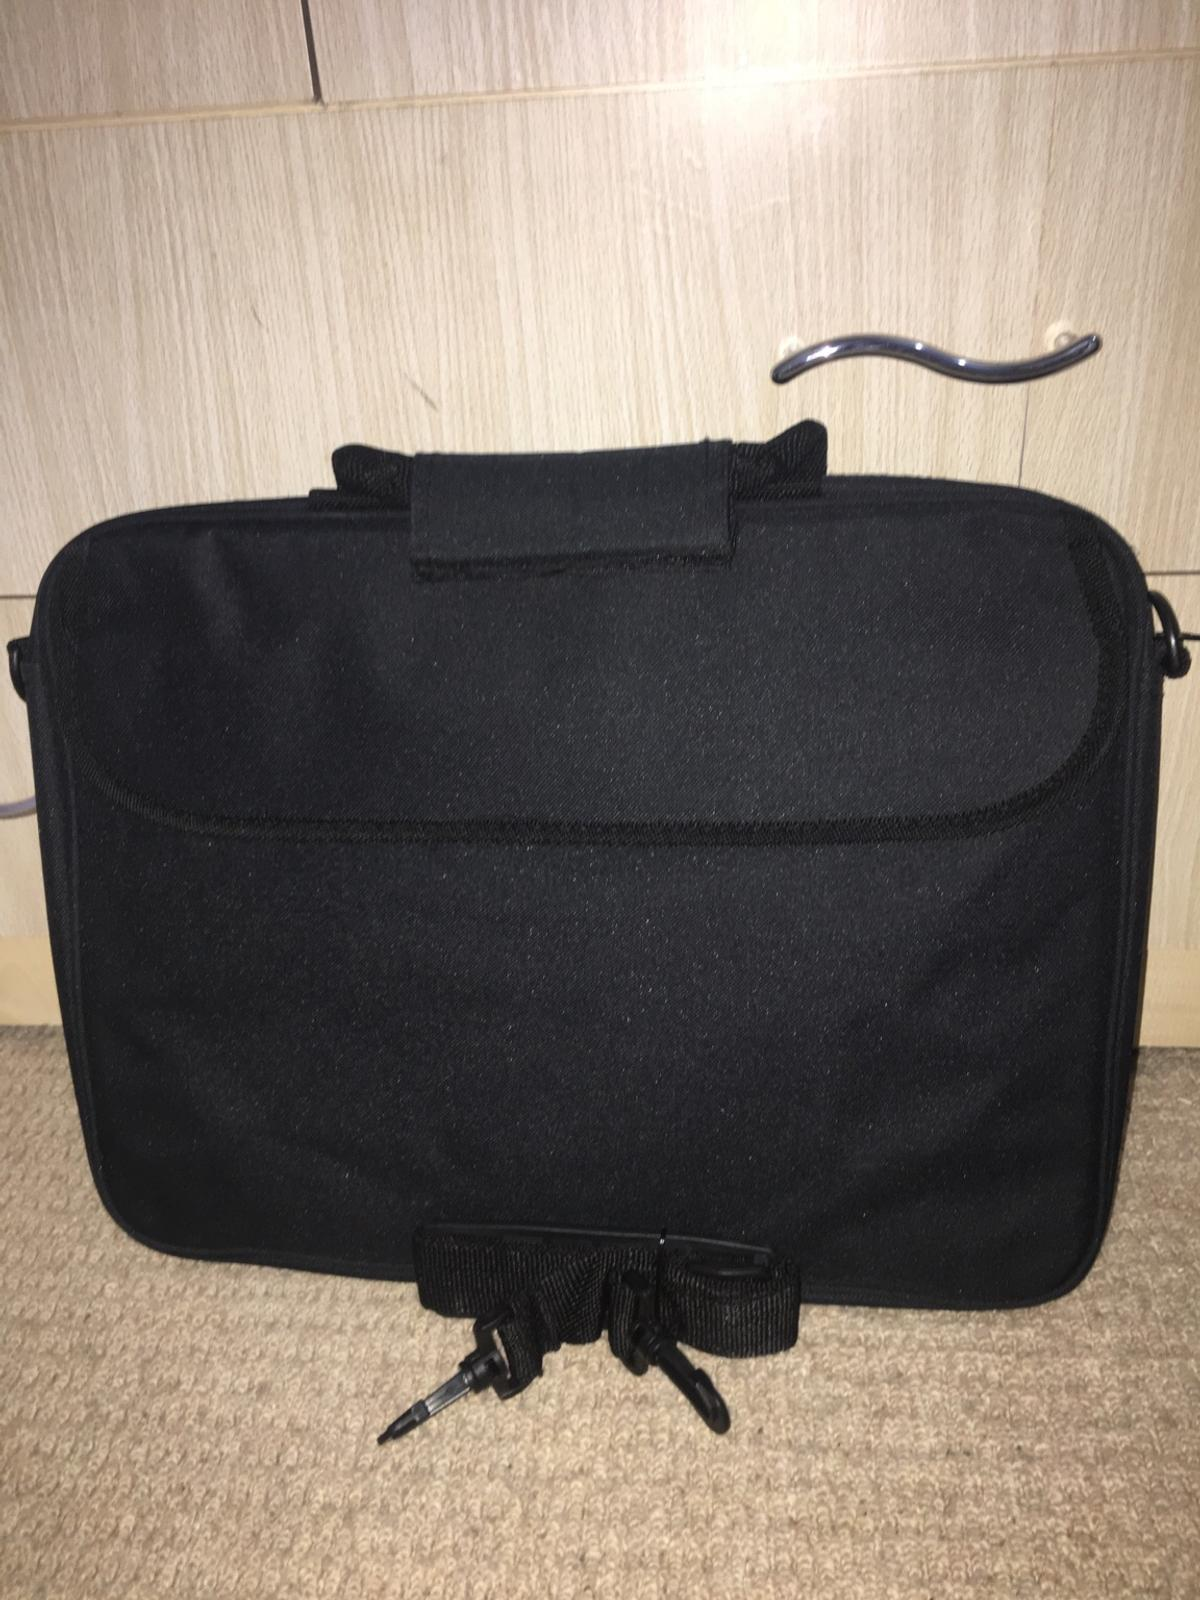 excellent condition comes with an extendable strap